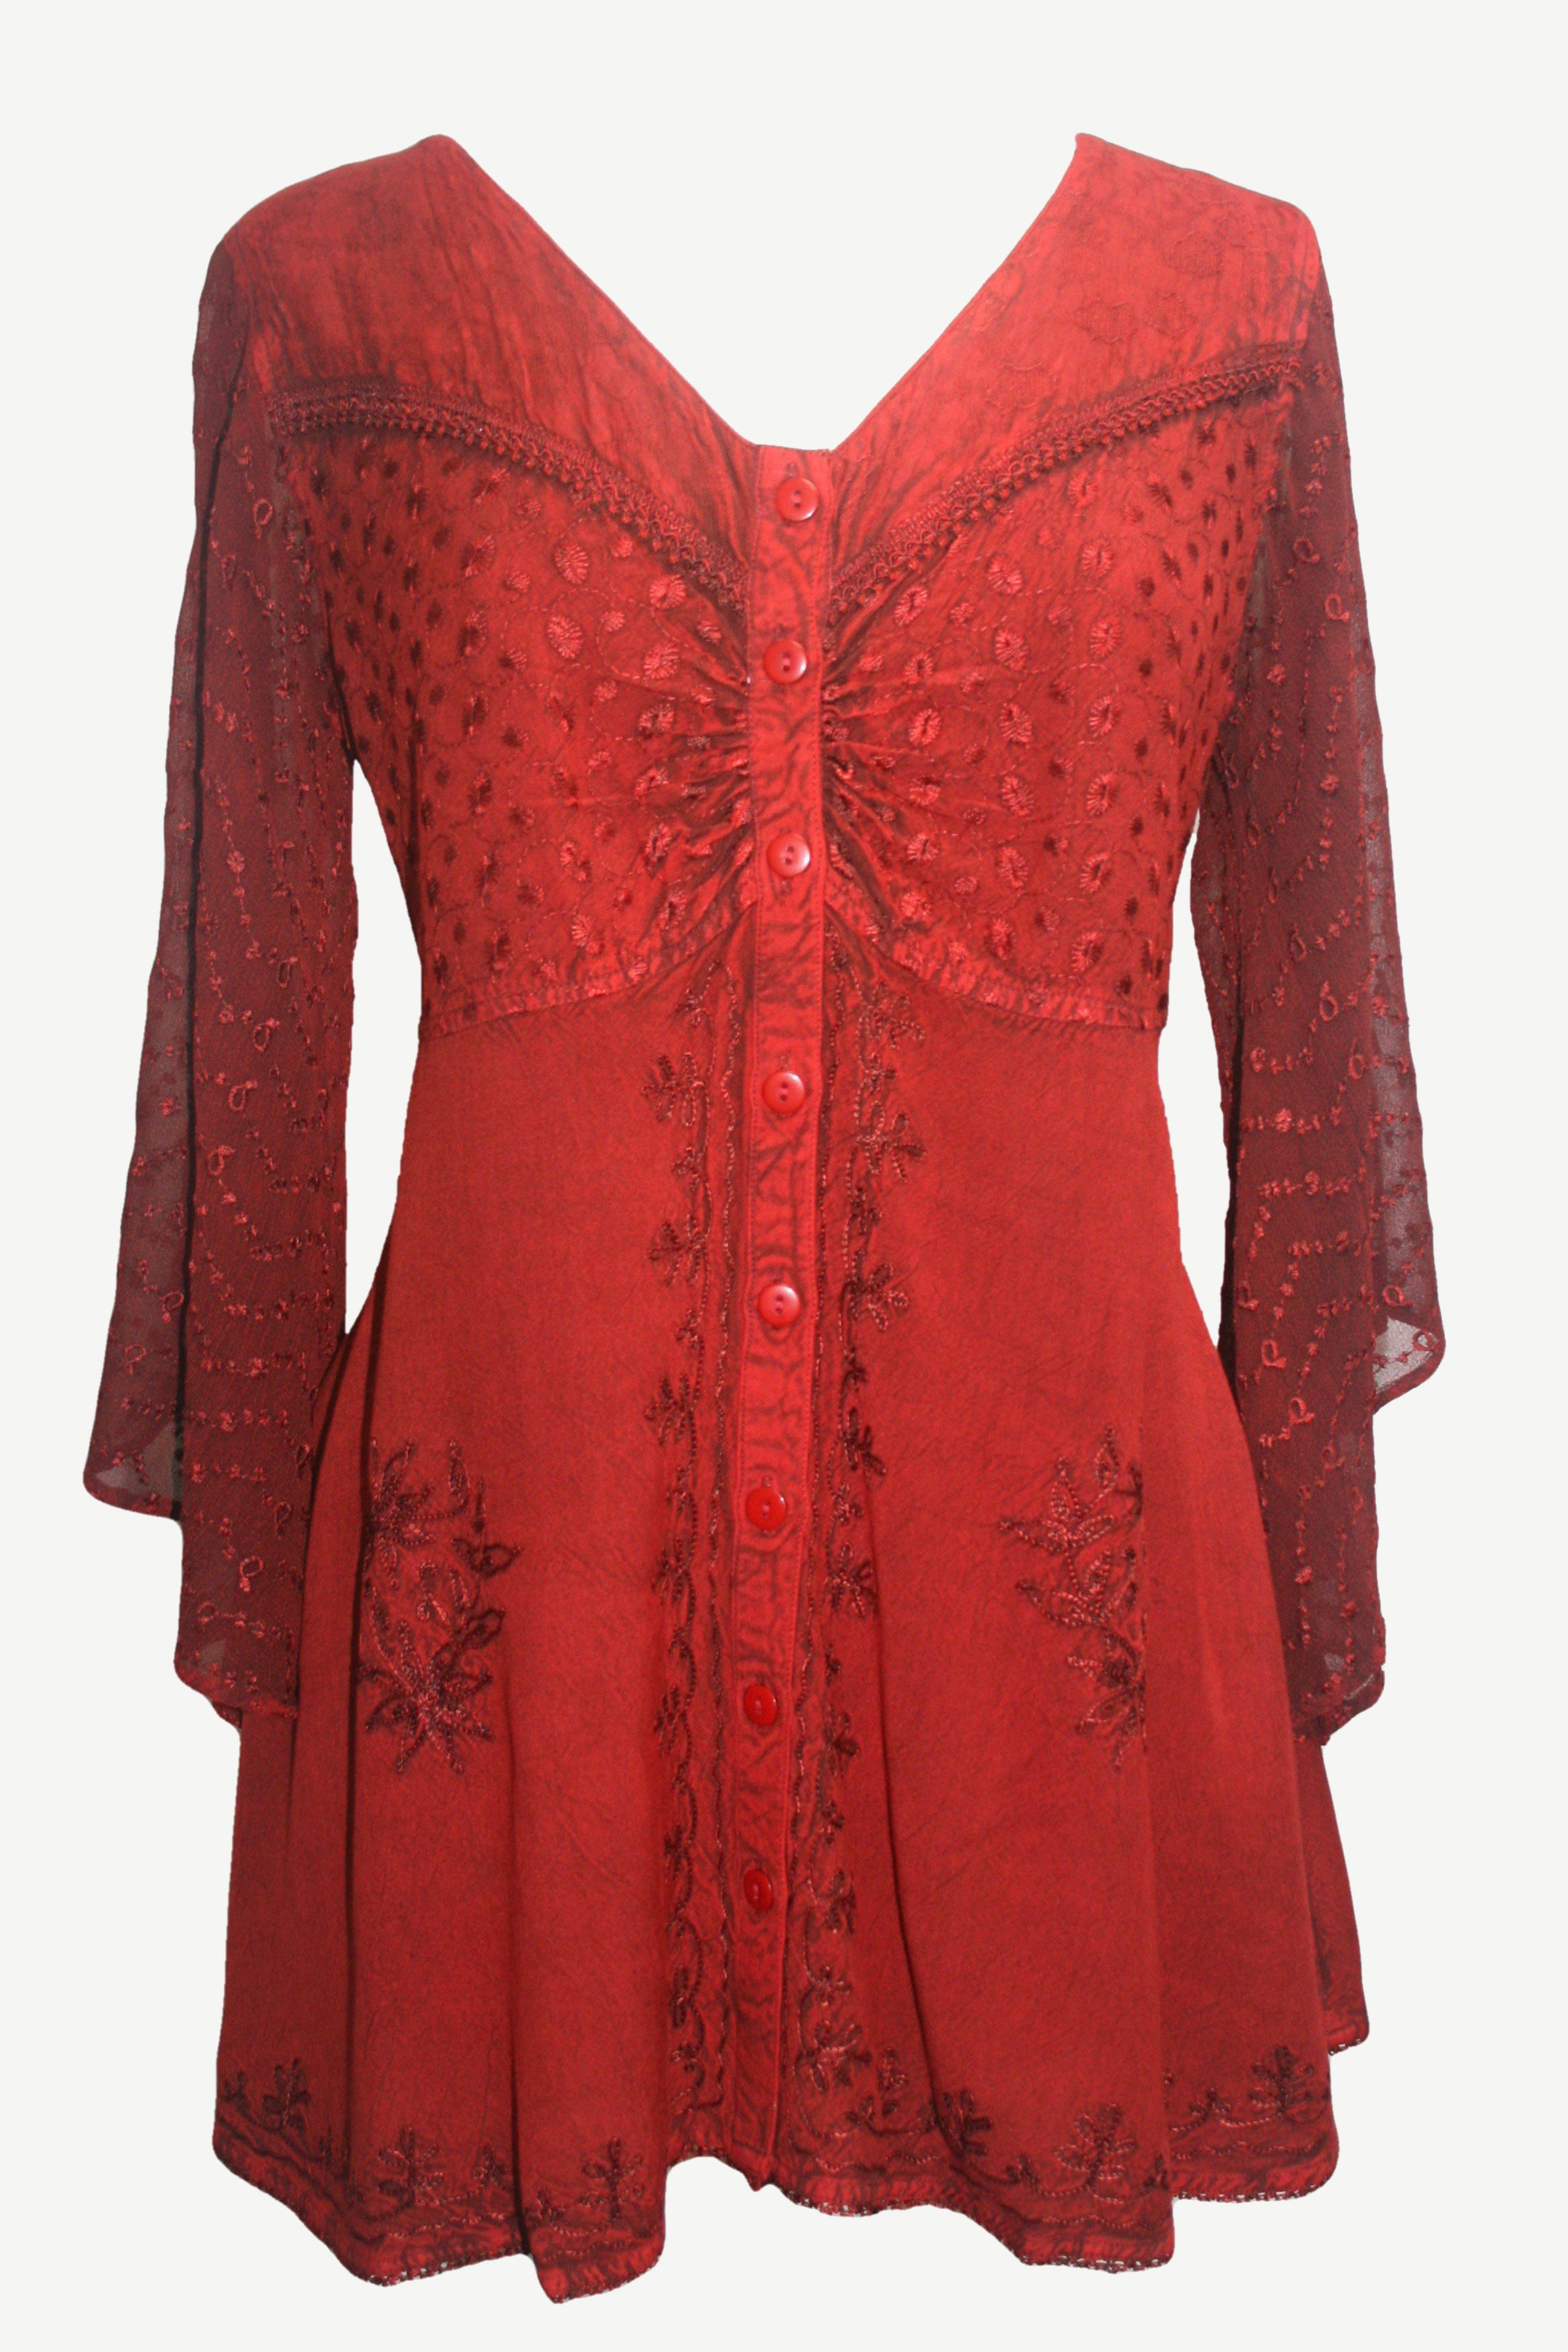 18607 B Medieval Gothic Embroidered Button Down Sheer Lace Sleeve Top Blouse - Agan Traders, B Red